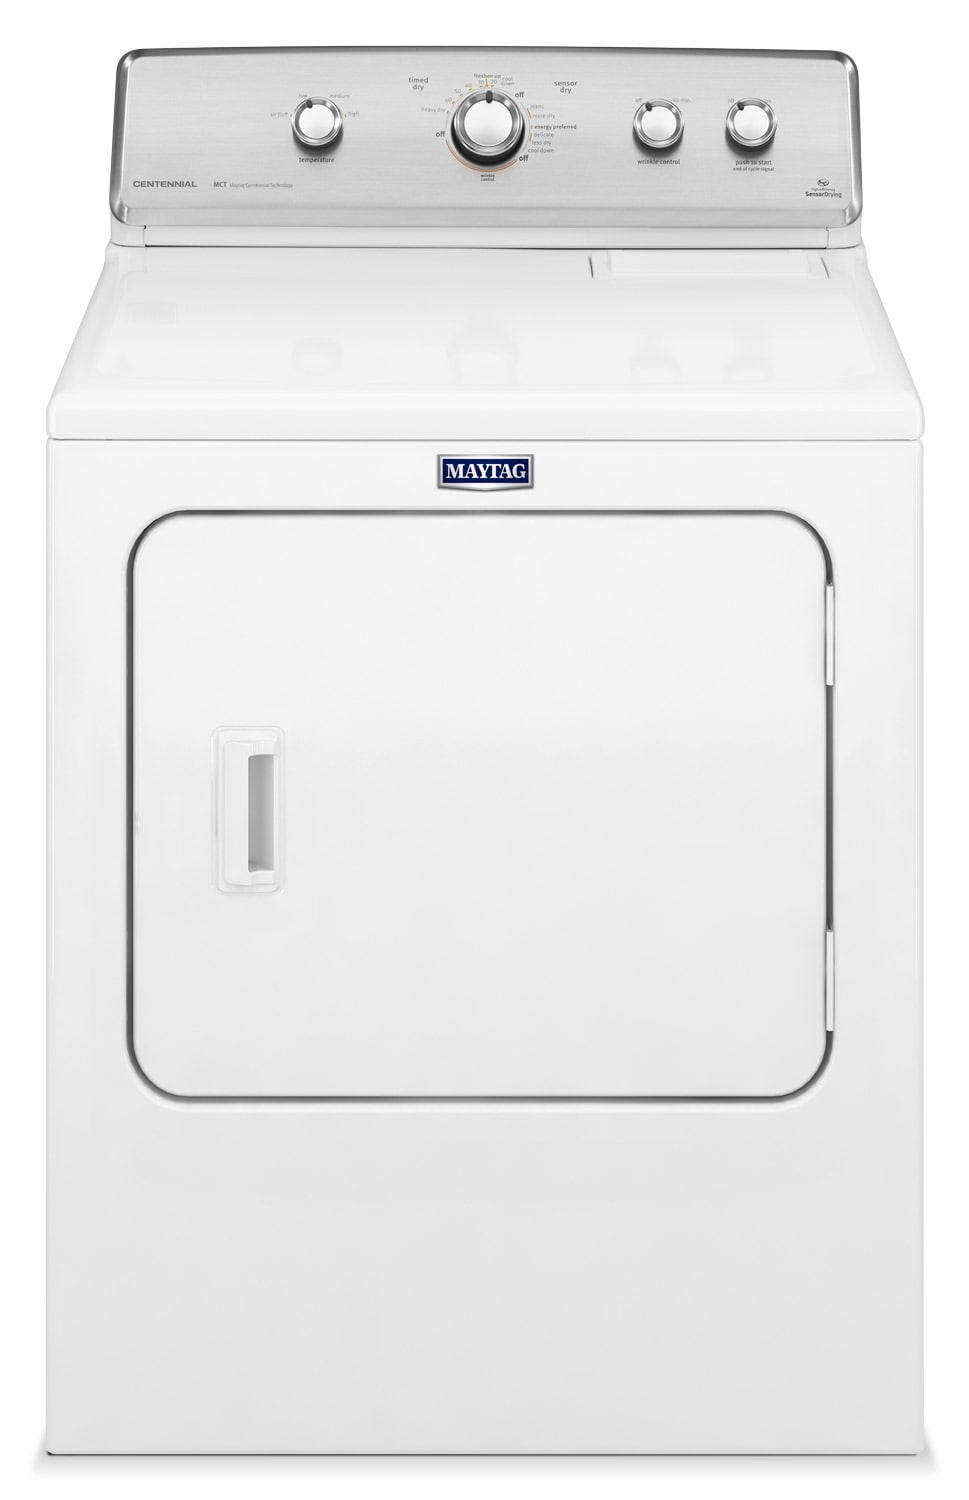 Washers and Dryers - Maytag Centennial® 7.0 Cu. Ft. Gas Dryer- MGDC555DW